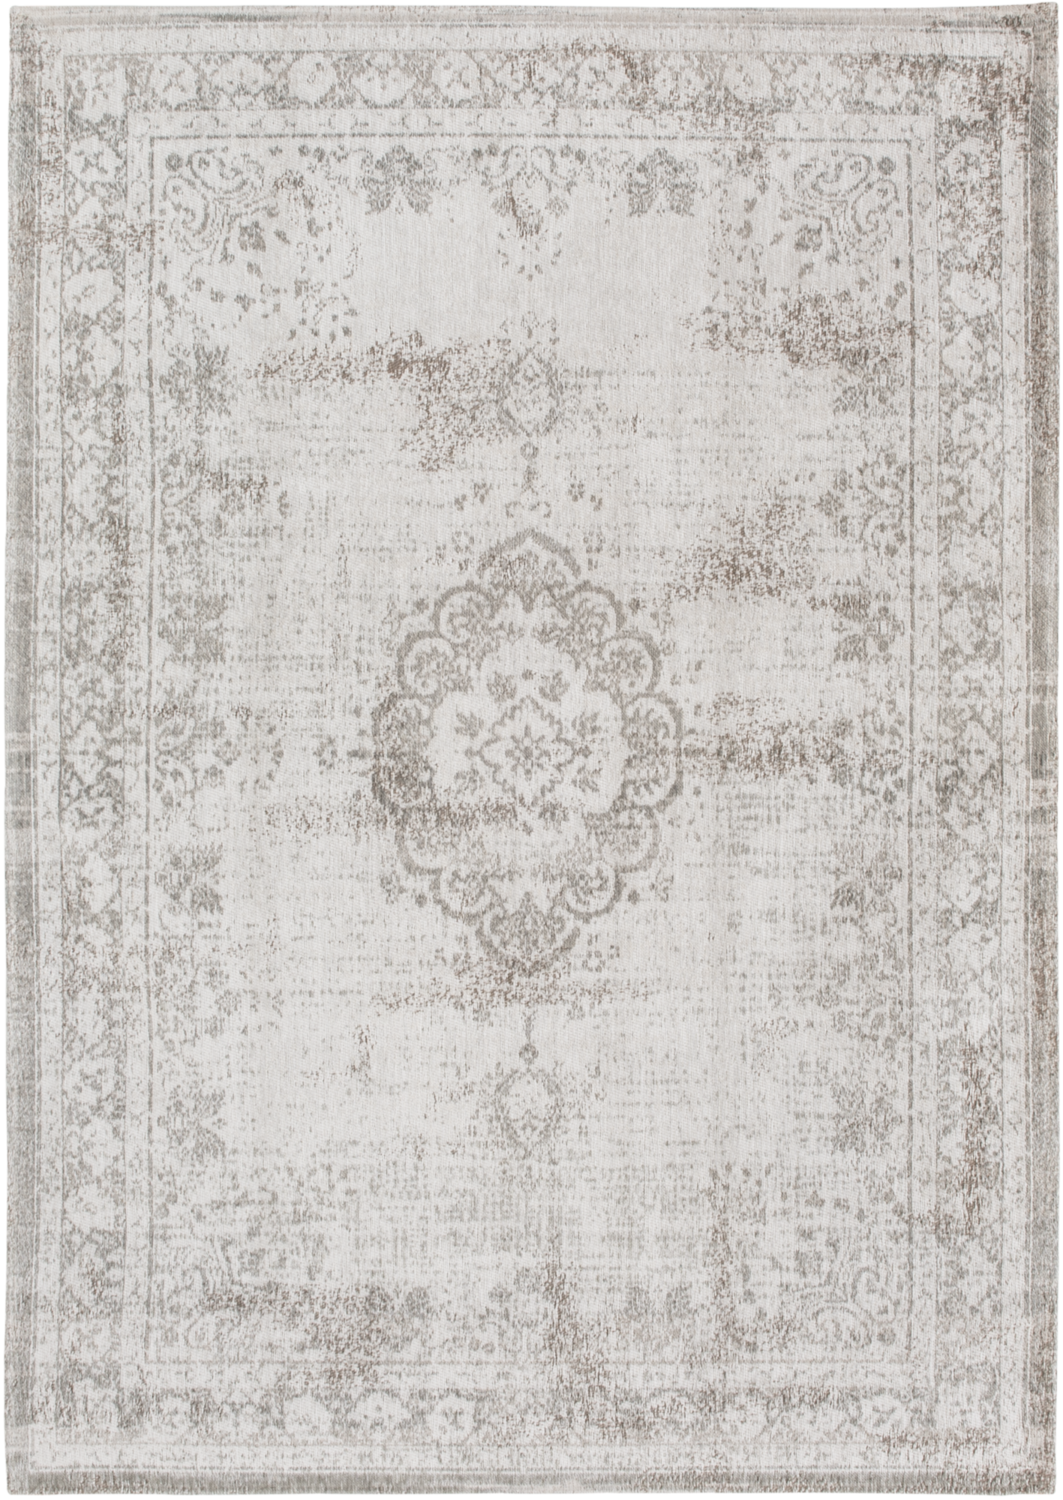 Louis De Poortere Fading World 8383 Salt Amp Pepper Rug Best Prices And Free Delivery At Buyarug Co Vloerkleed Louis De Poortere Vloerkleed Vloerkleed Wit